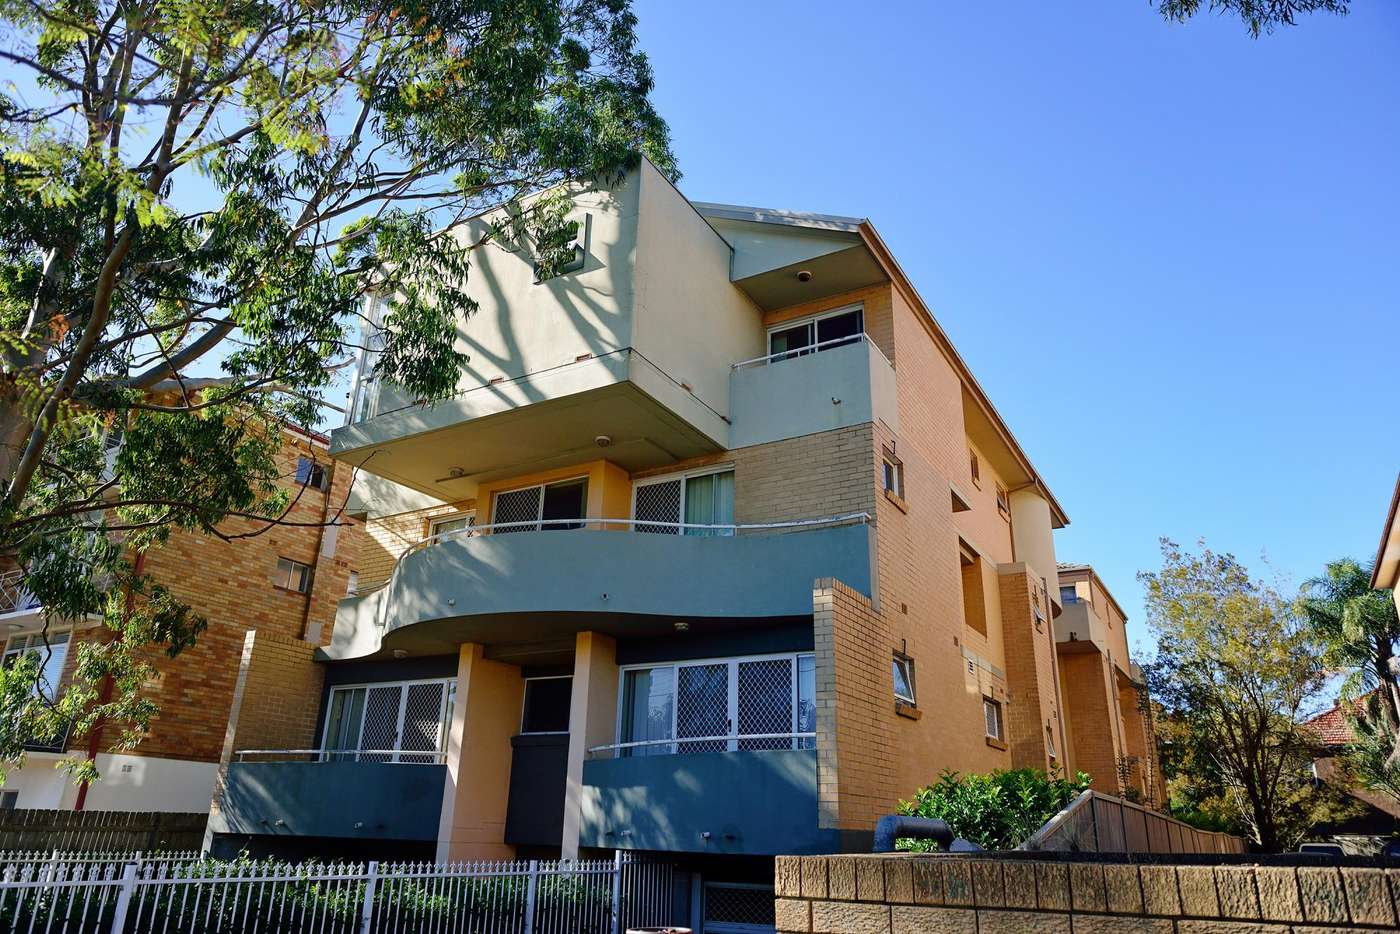 Main view of Homely apartment listing, 1/88 Todman Ave, Kensington NSW 2033